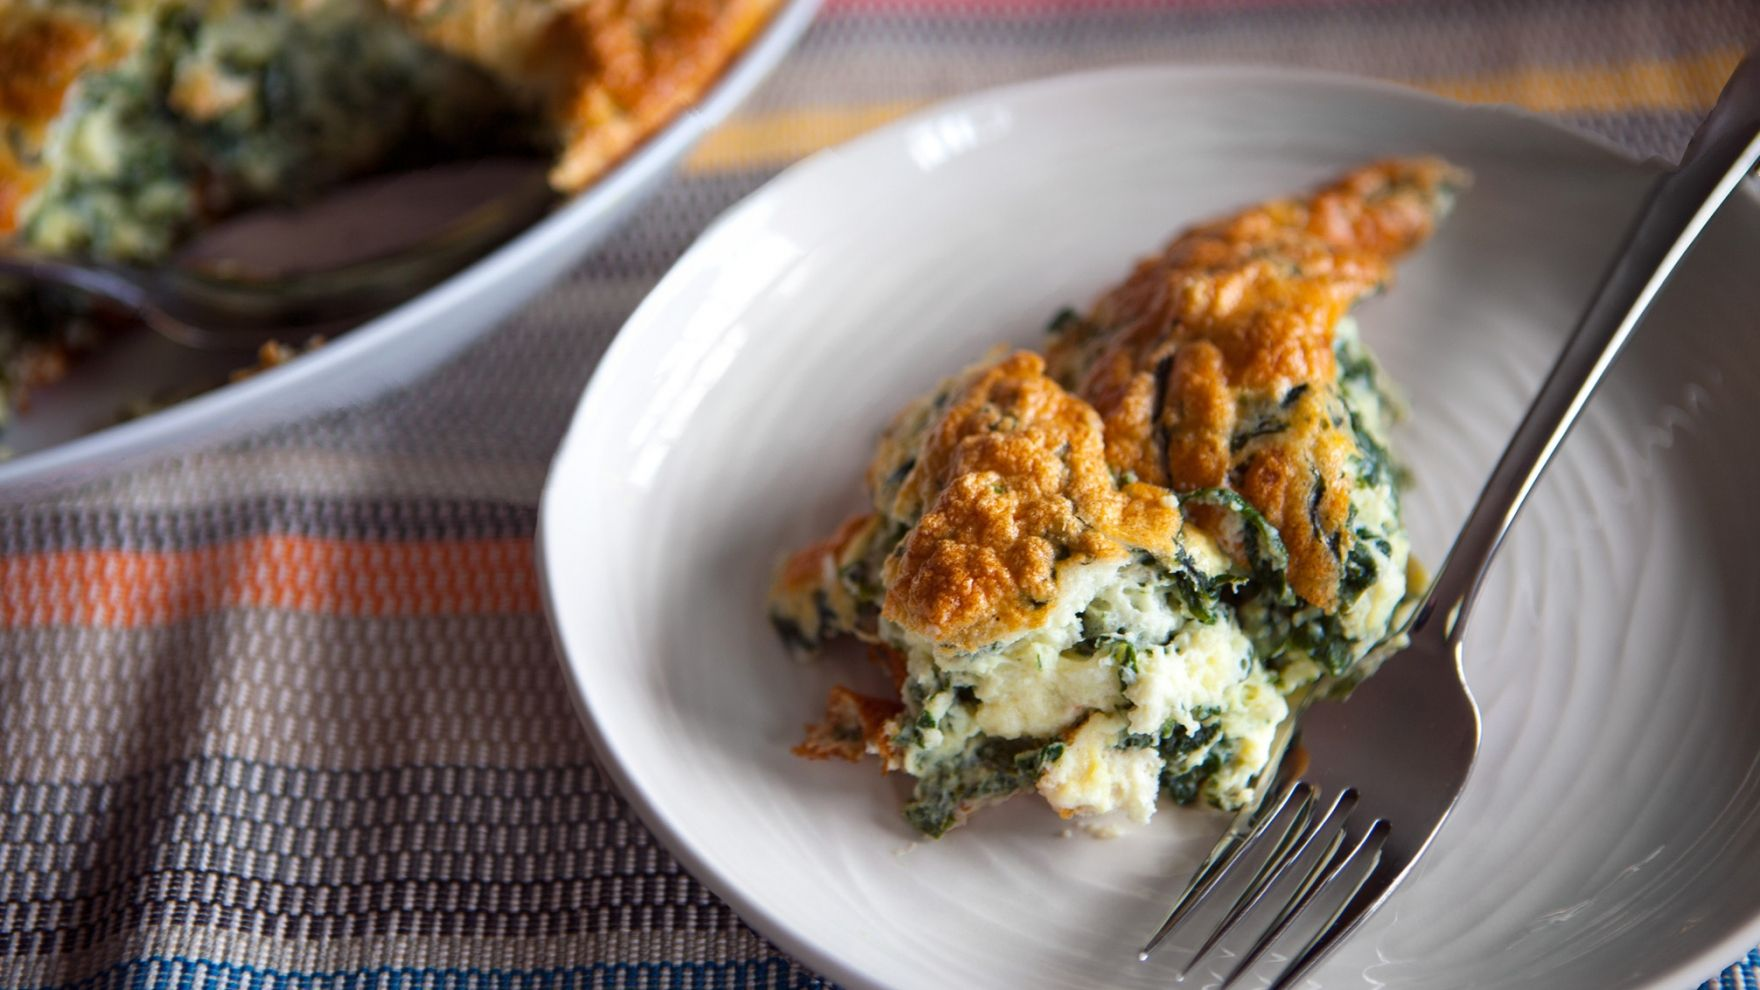 Spinach goat cheese souffle recipe by Deborah Madison